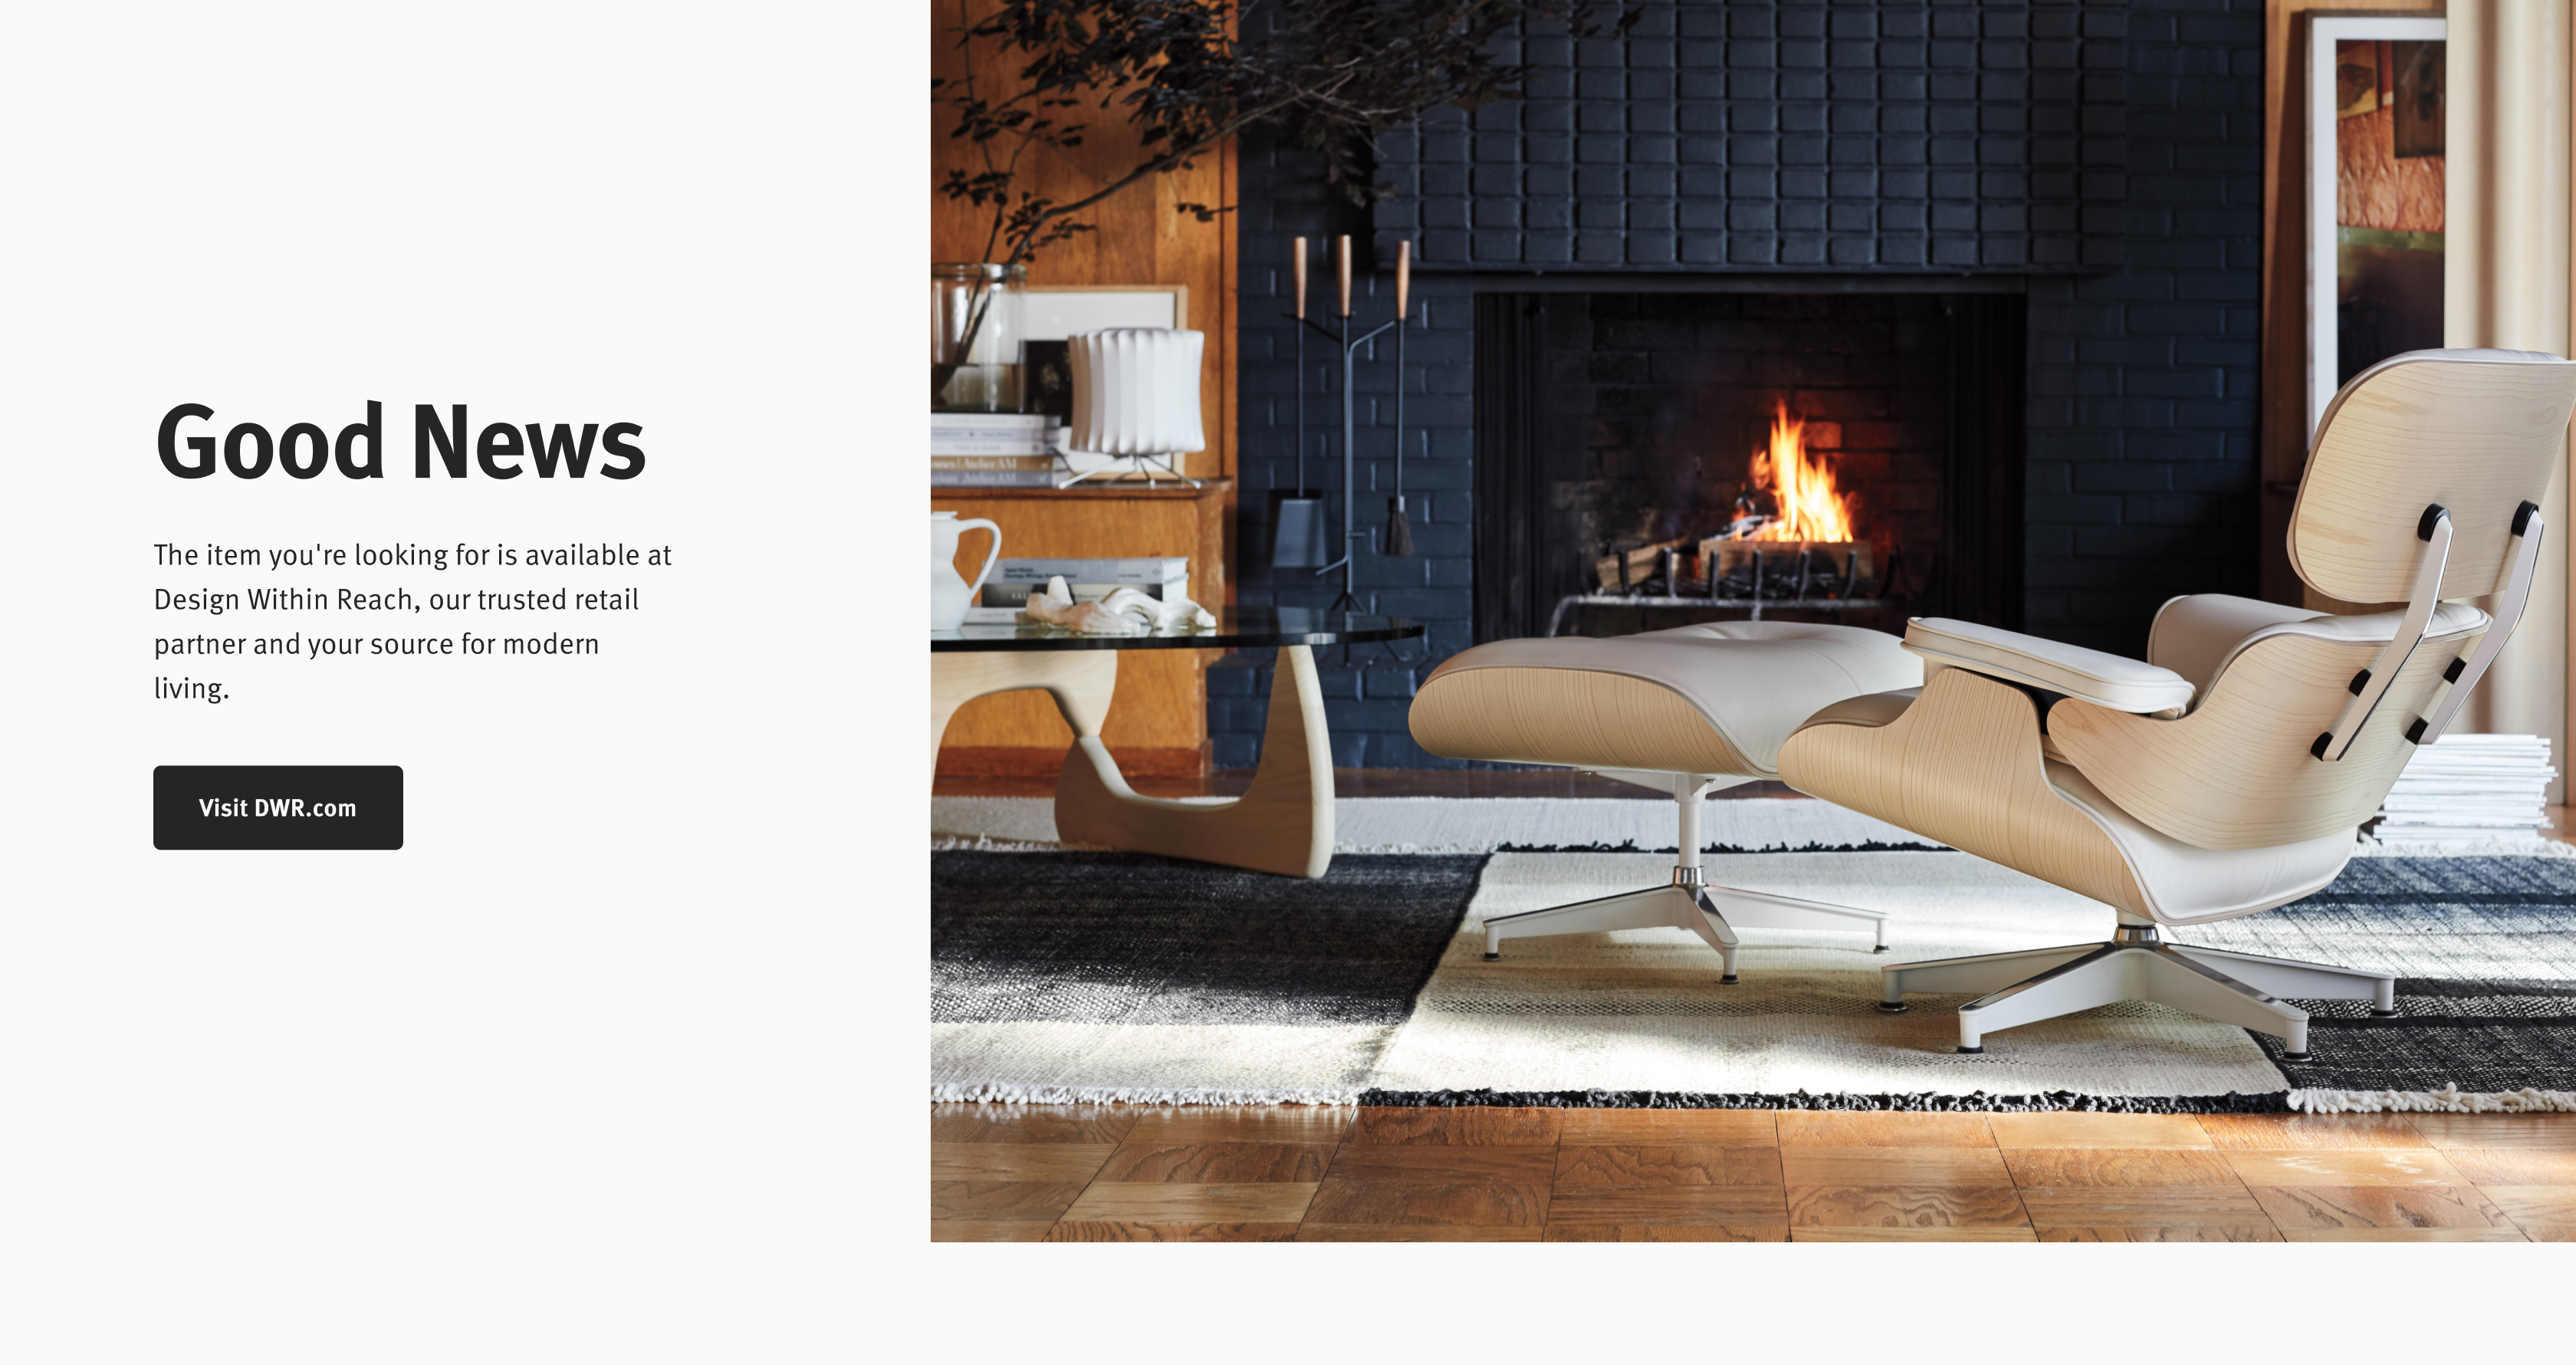 - Not on Herman Miller - Check Design Within Reach.